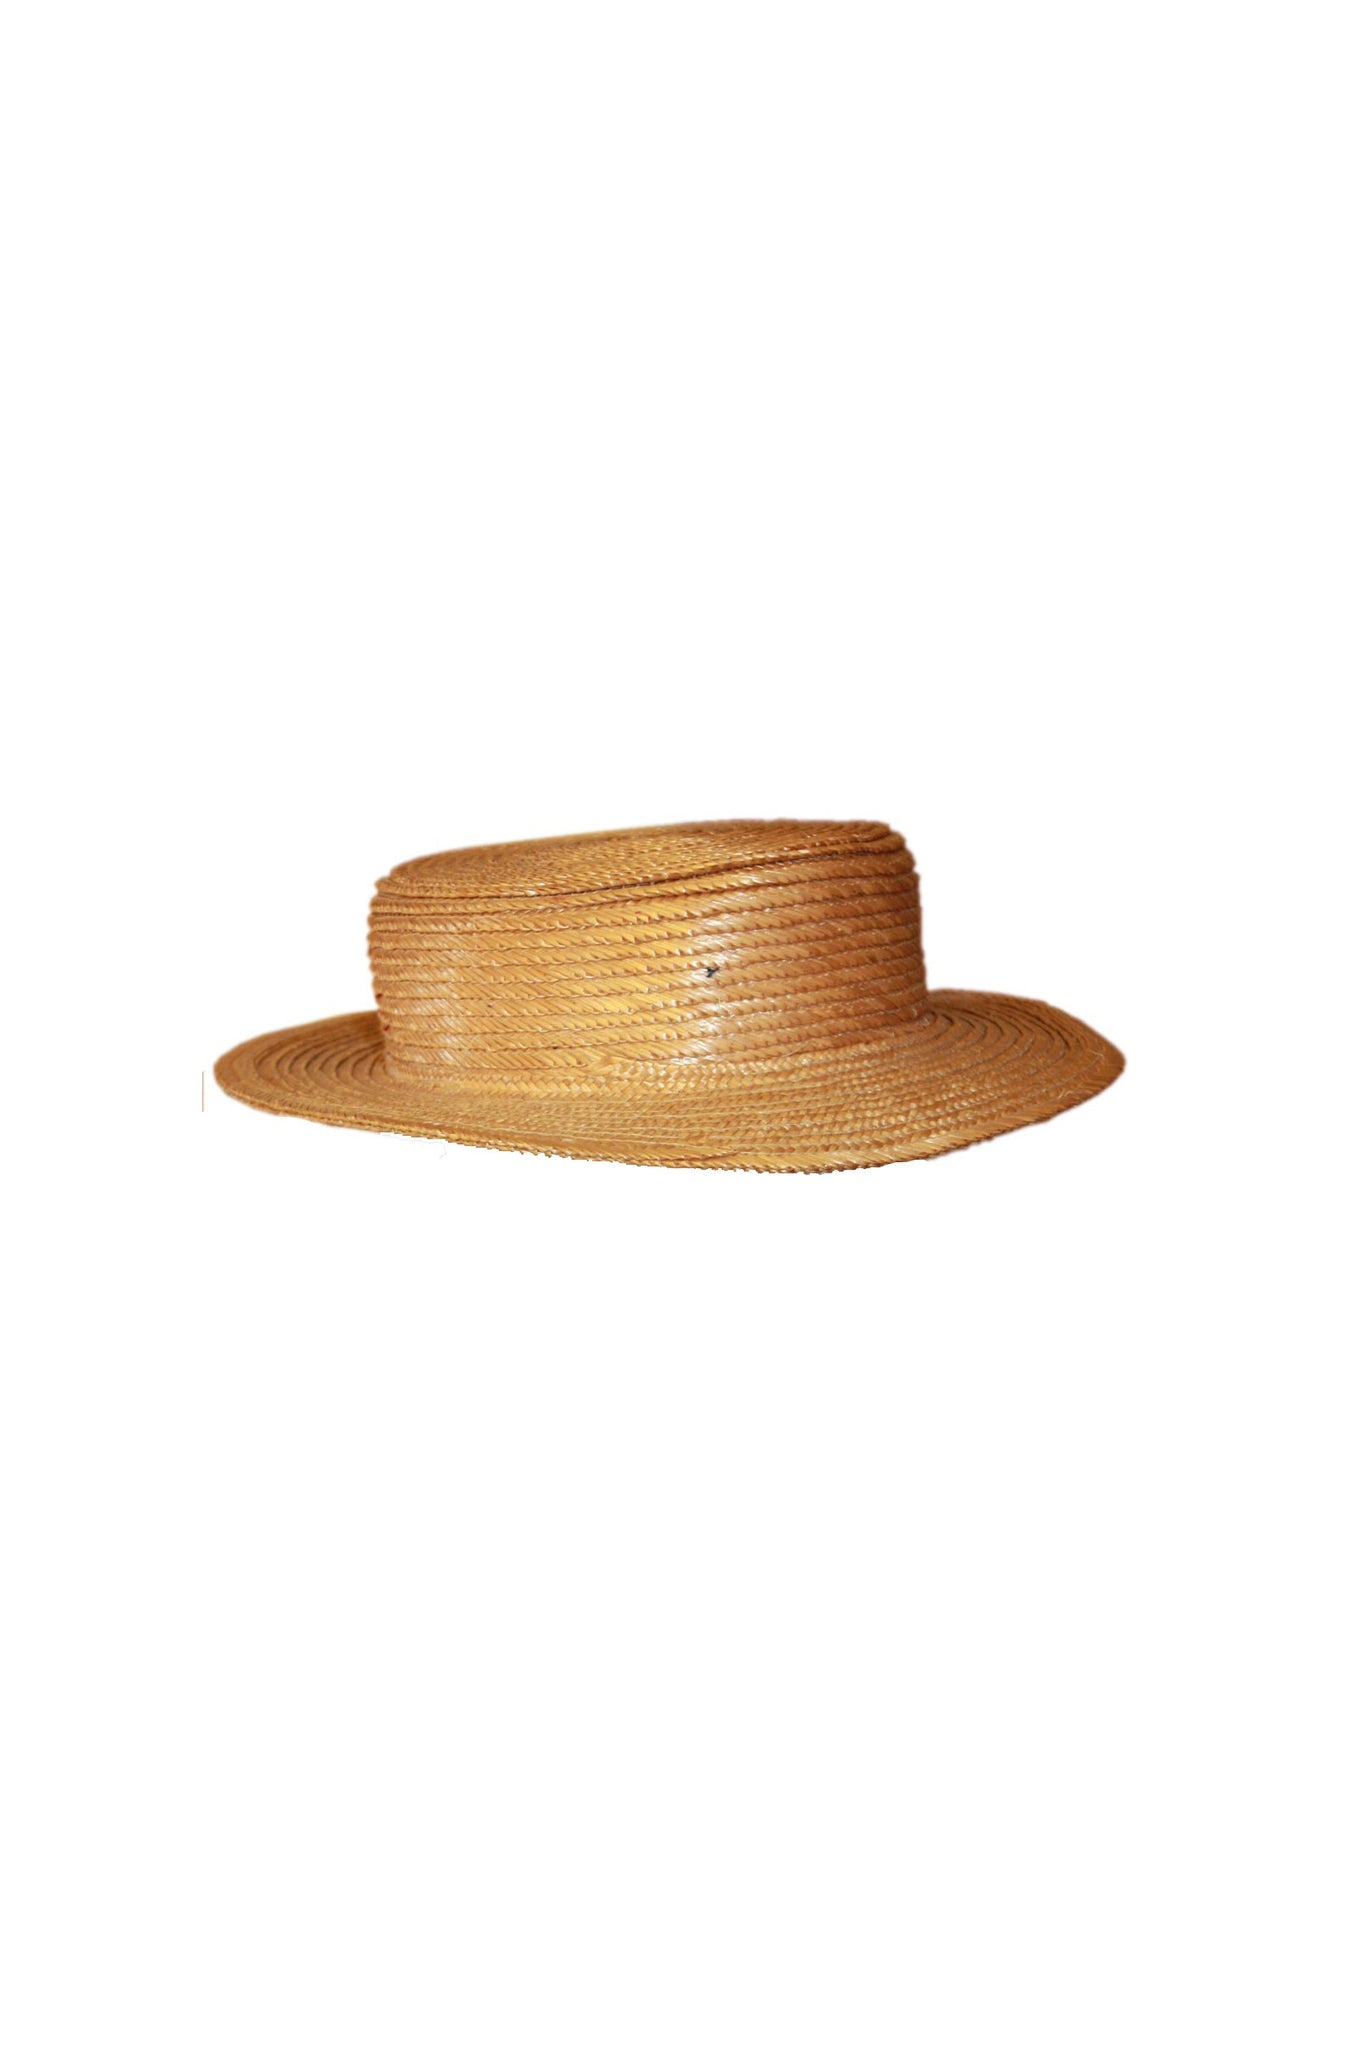 Vintage Boater straw hat